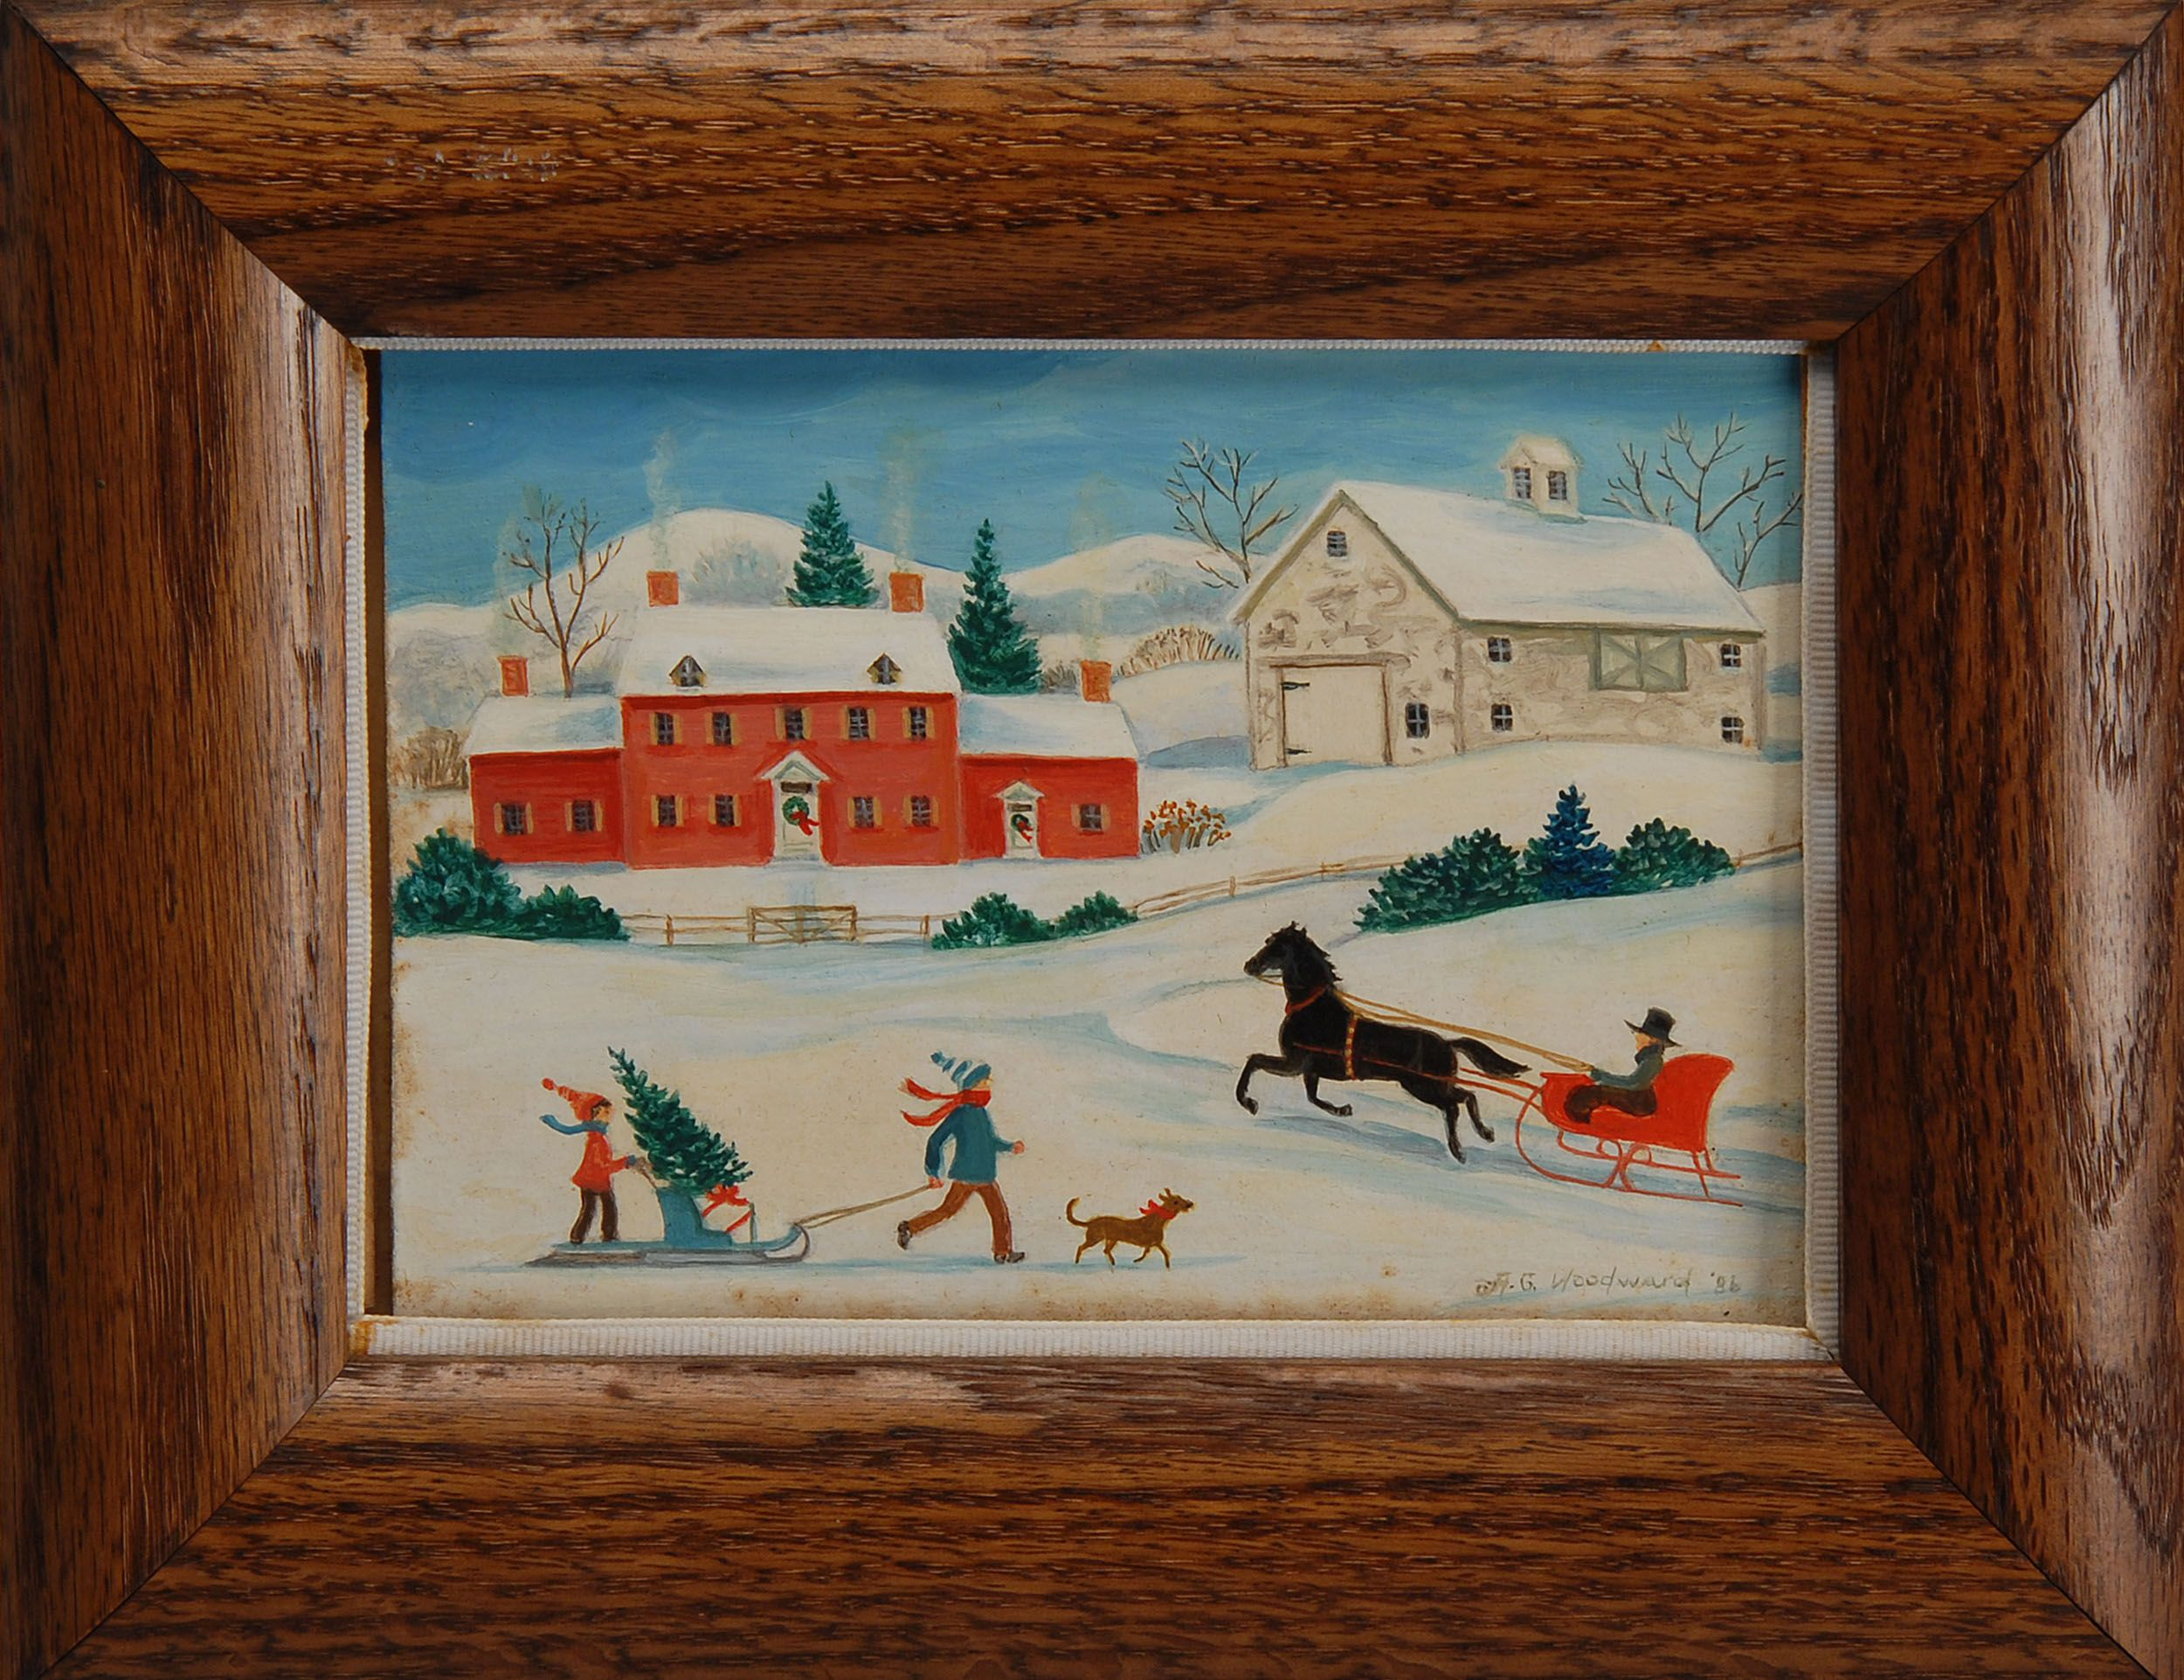 Paintings at Auction - Antiques and Accessories at Eldred's Auction House